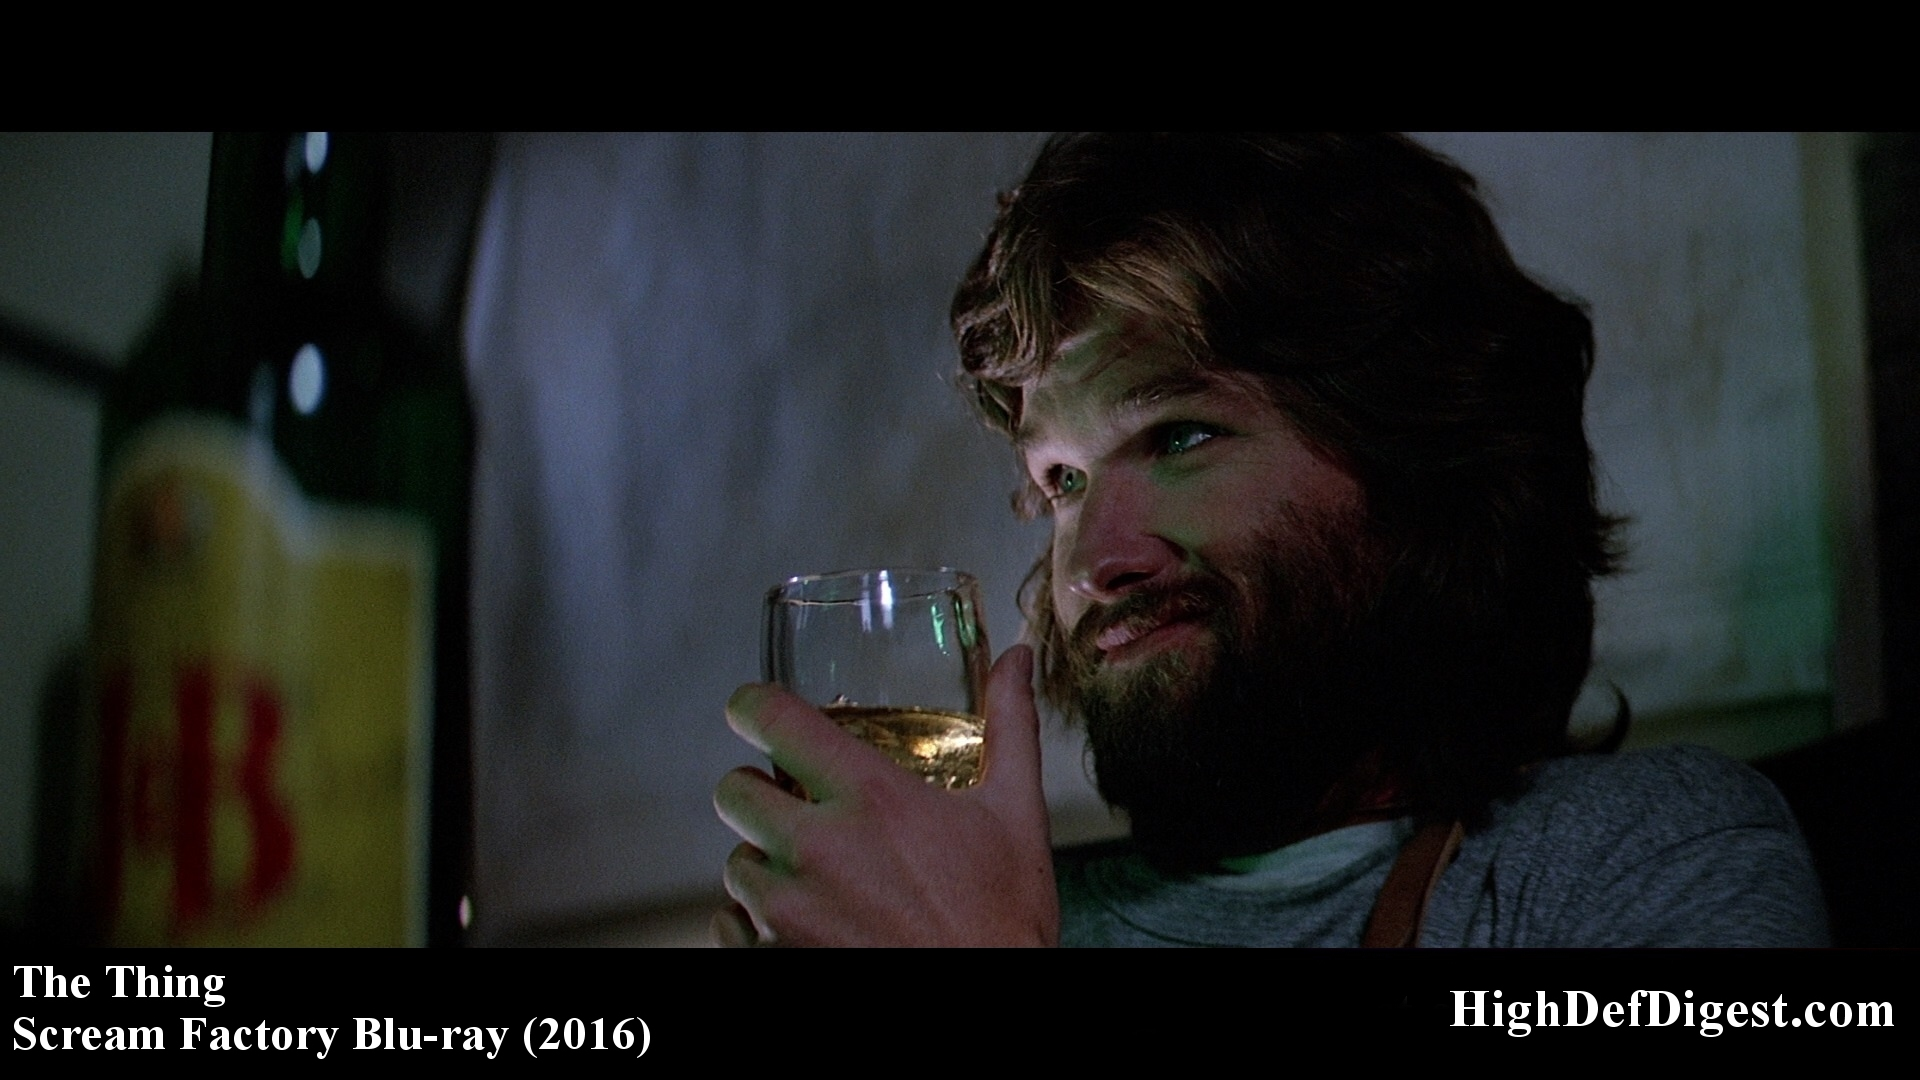 The Thing - Kurt Russell (Scream Factory Blu-ray)